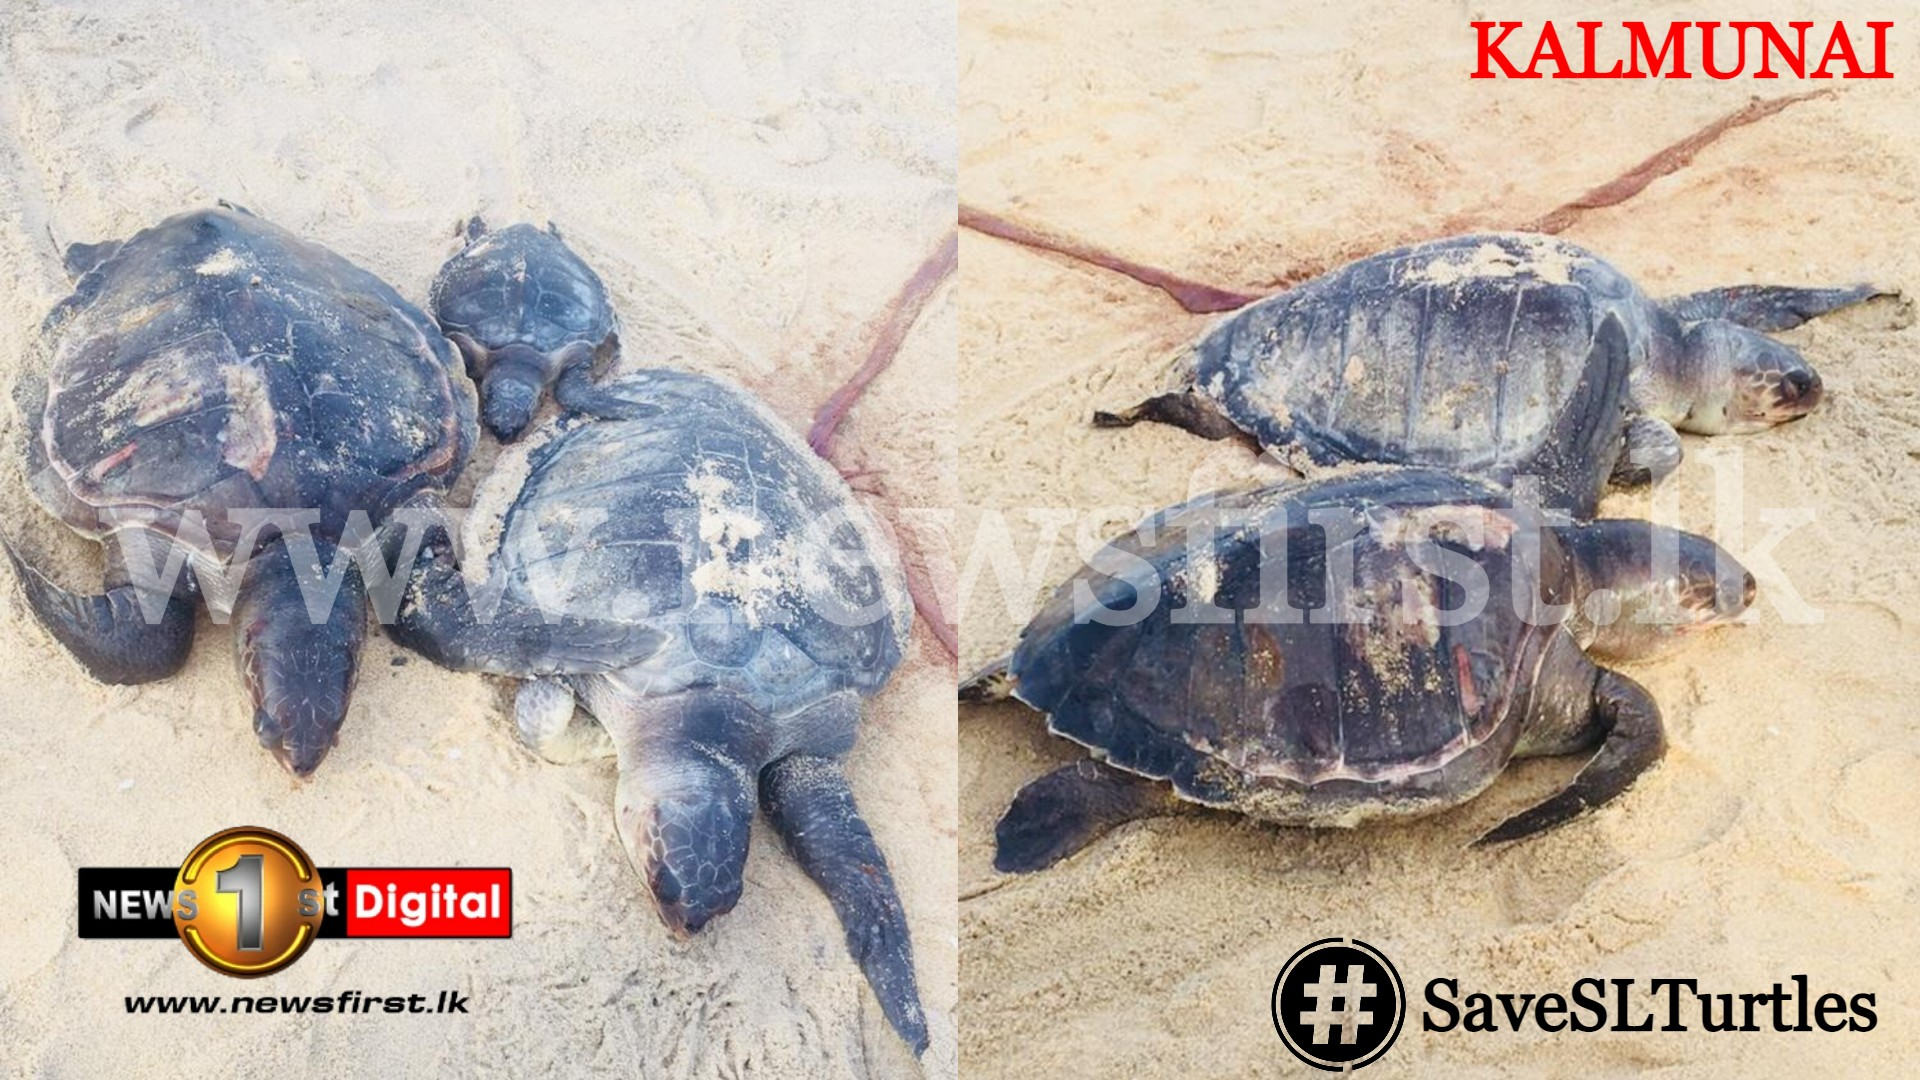 Red Flags raised as dead sea turtles and dolphins continue to wash up on Sri Lankan shores